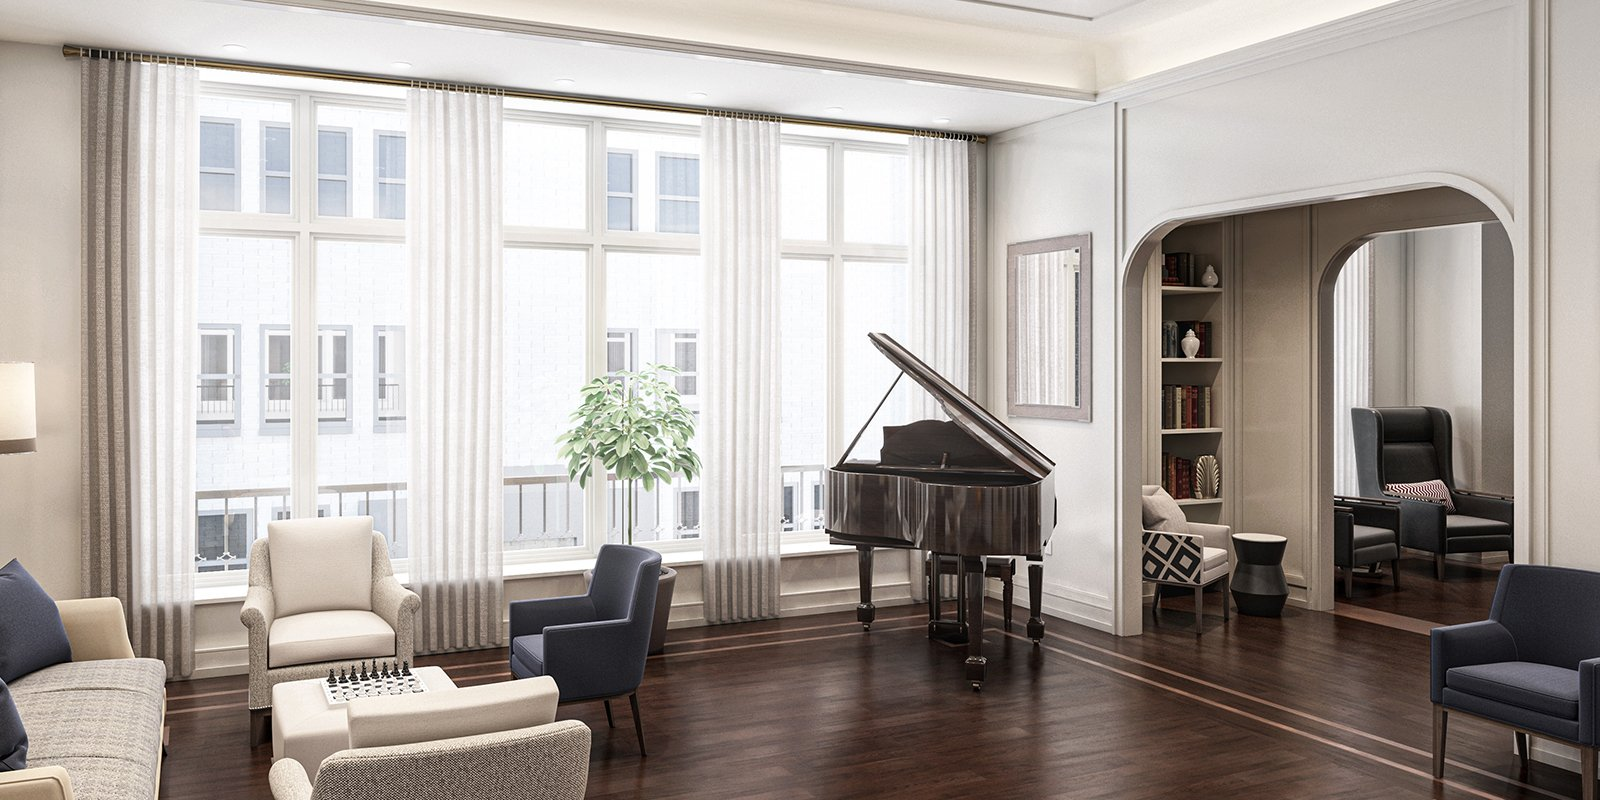 room with a piano, chairs, and a sofa